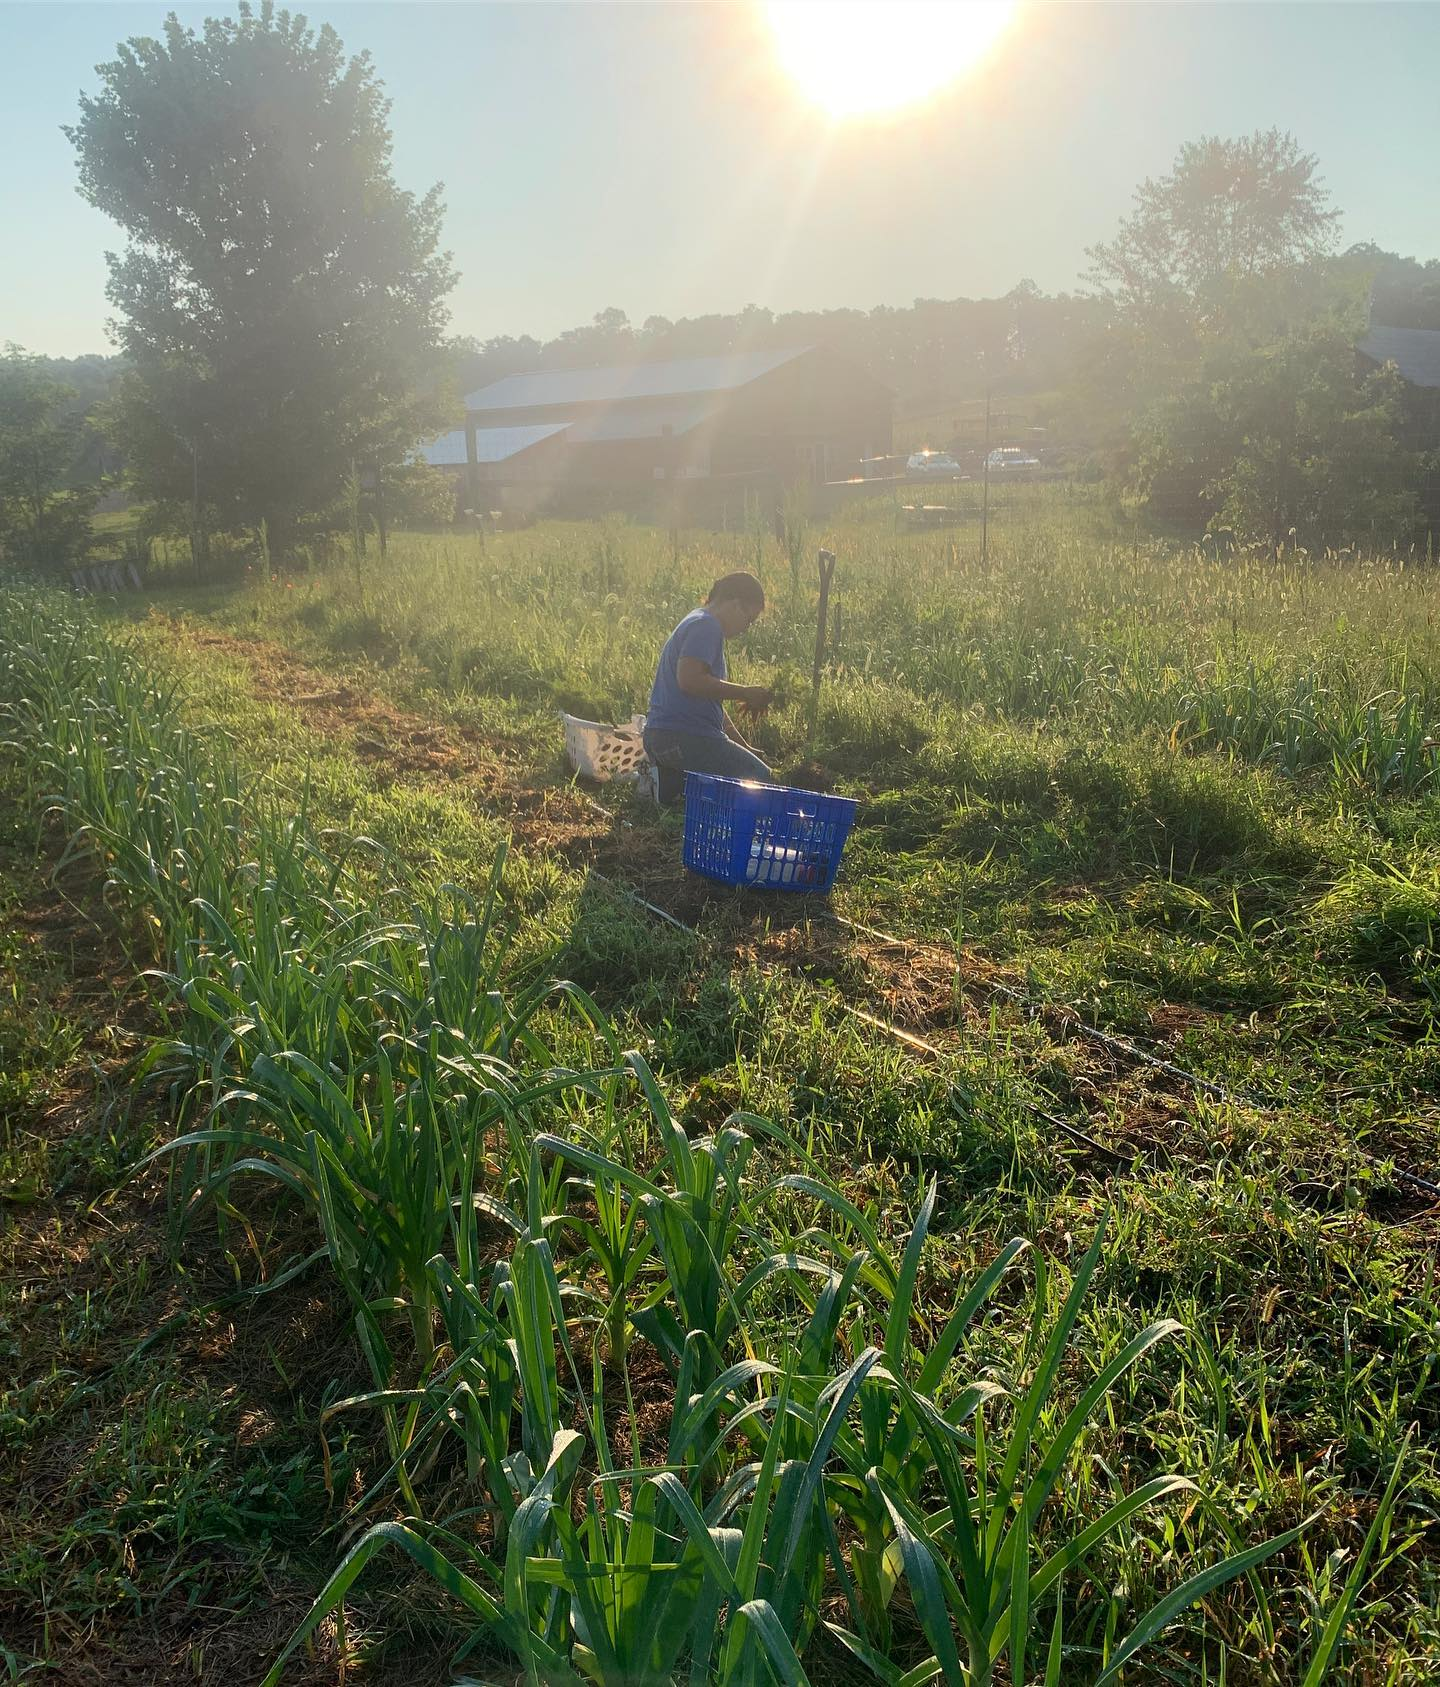 Spring 2020: Farmer Wanted for Small Certified Organic CSA Market Garden Operation